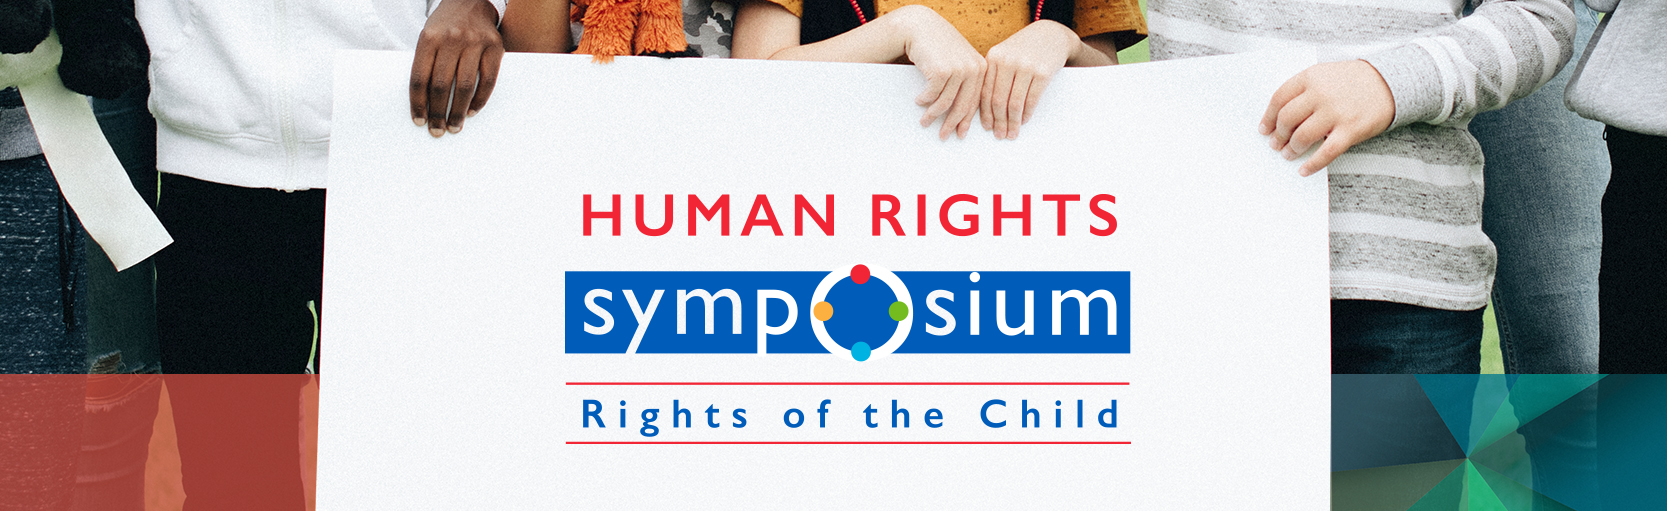 Children holding up a sign in a field with the Halton District School Board Human Rights Symposium logo